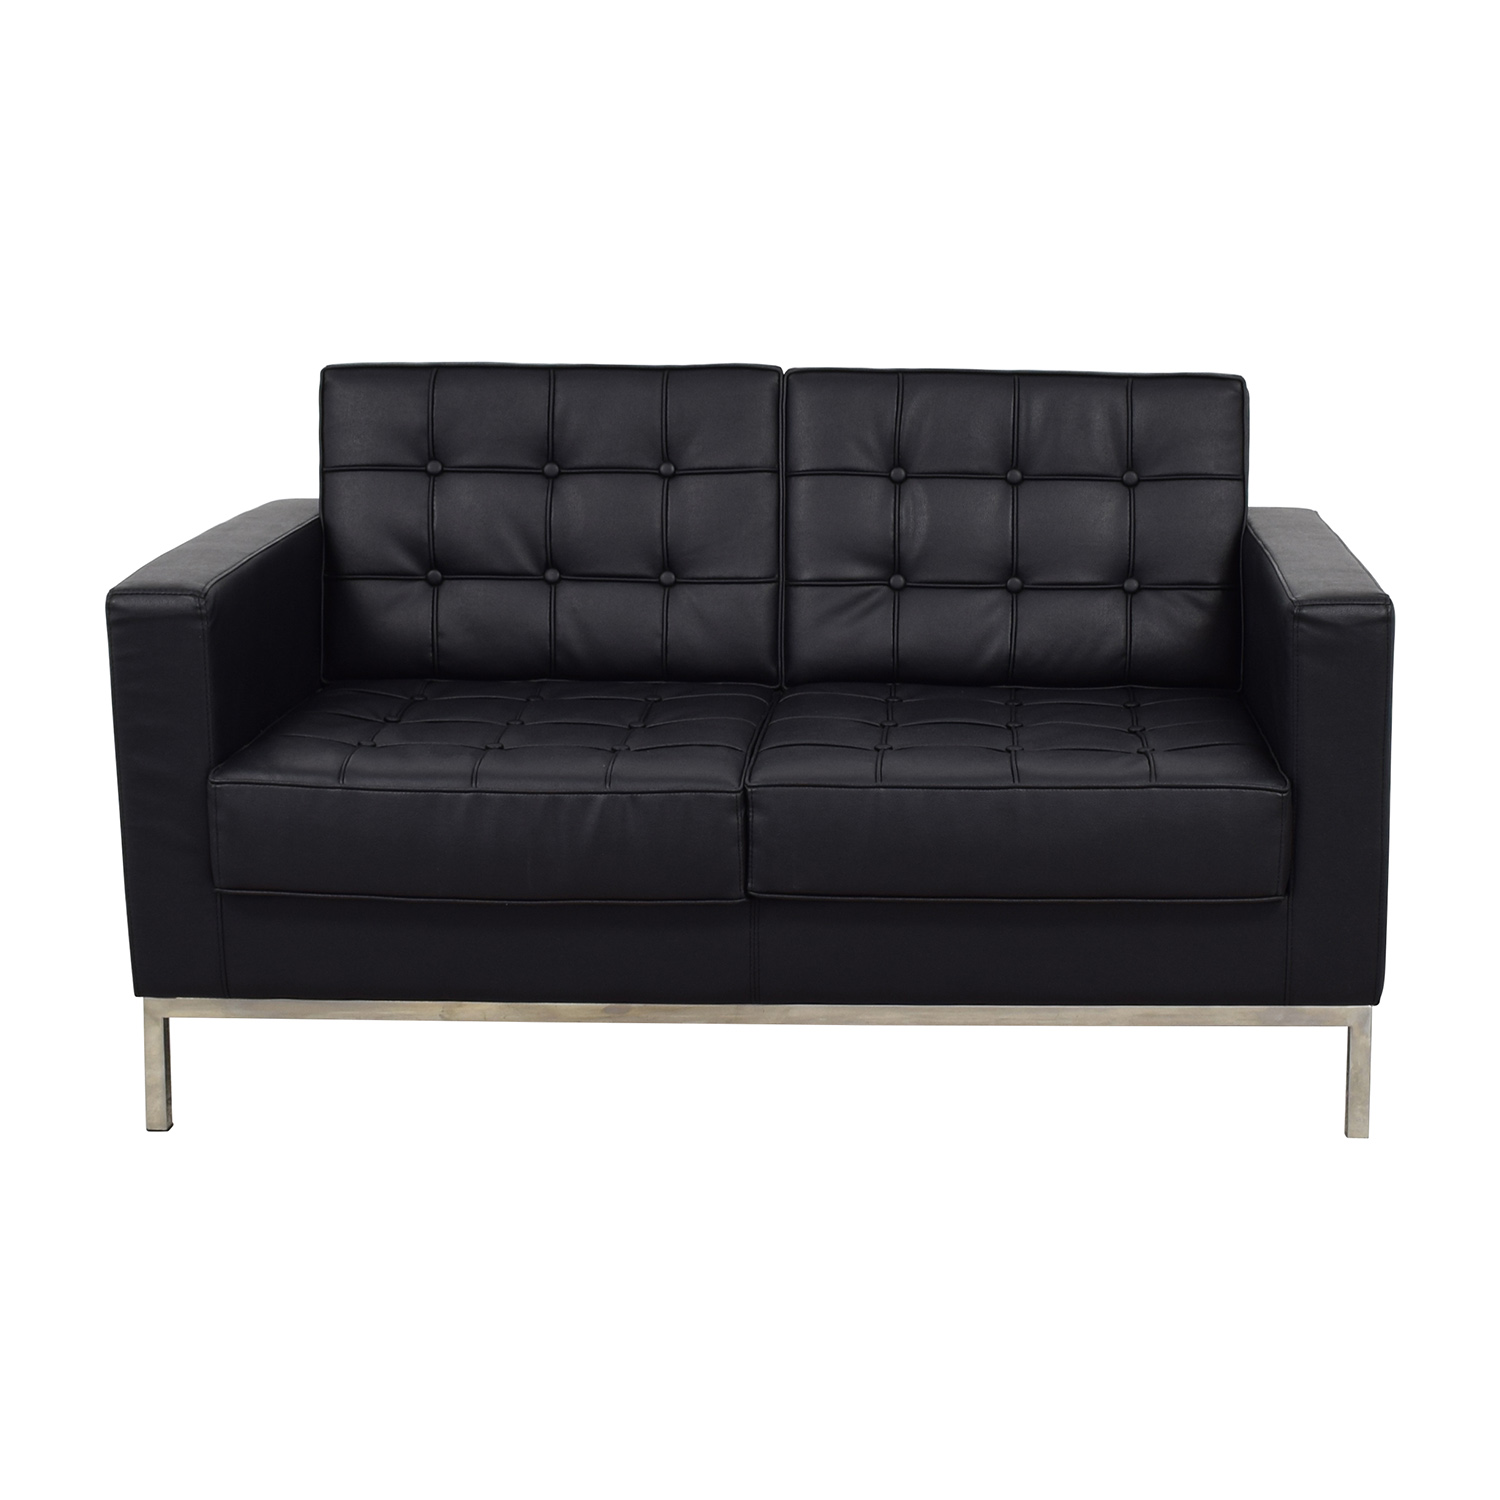 Lacey Series Lacey Series Contemporary Black Leather Loveseat nyc